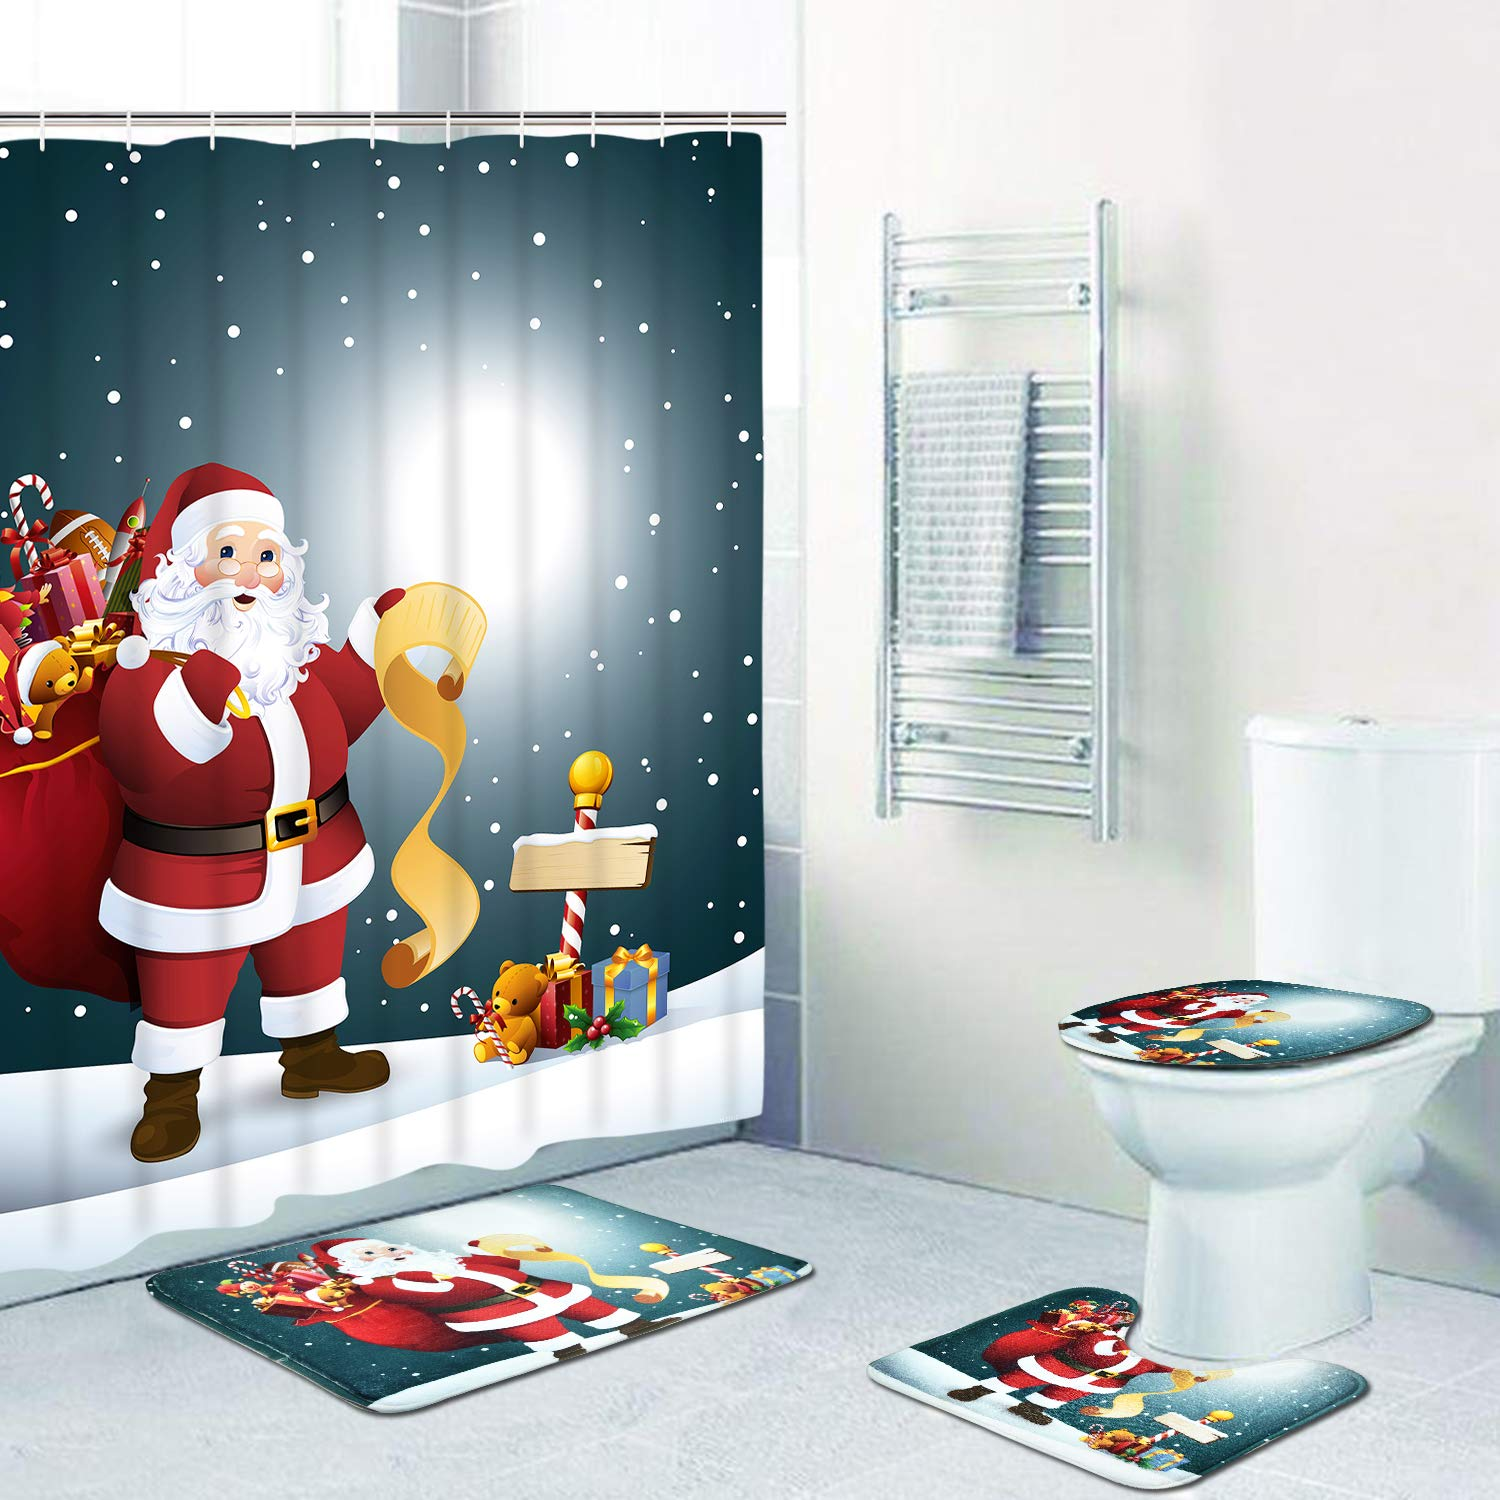 4 Pcs Merry Christmas Shower Curtain Sets with Non-Slip Rugs, Toilet Lid Cover, Bath Mat and 12 Hooks Santa Moon Snow Shower Curtain for Christmas Decoration by Sevenstars